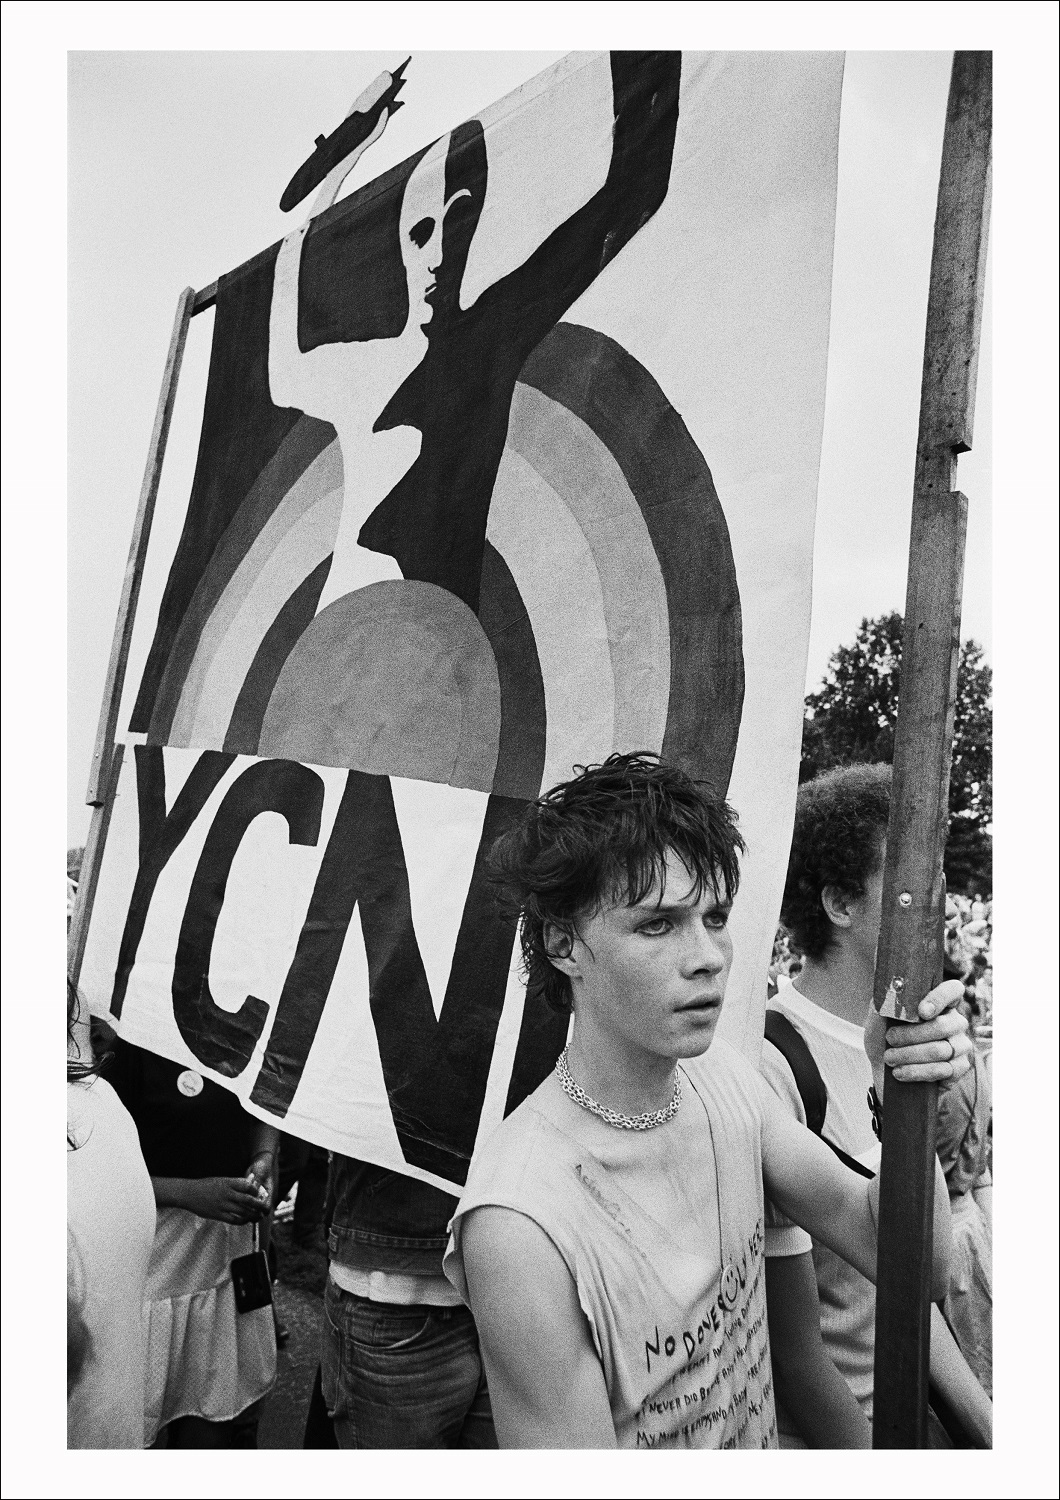 CND march and rally, Hyde Park, London, 1982